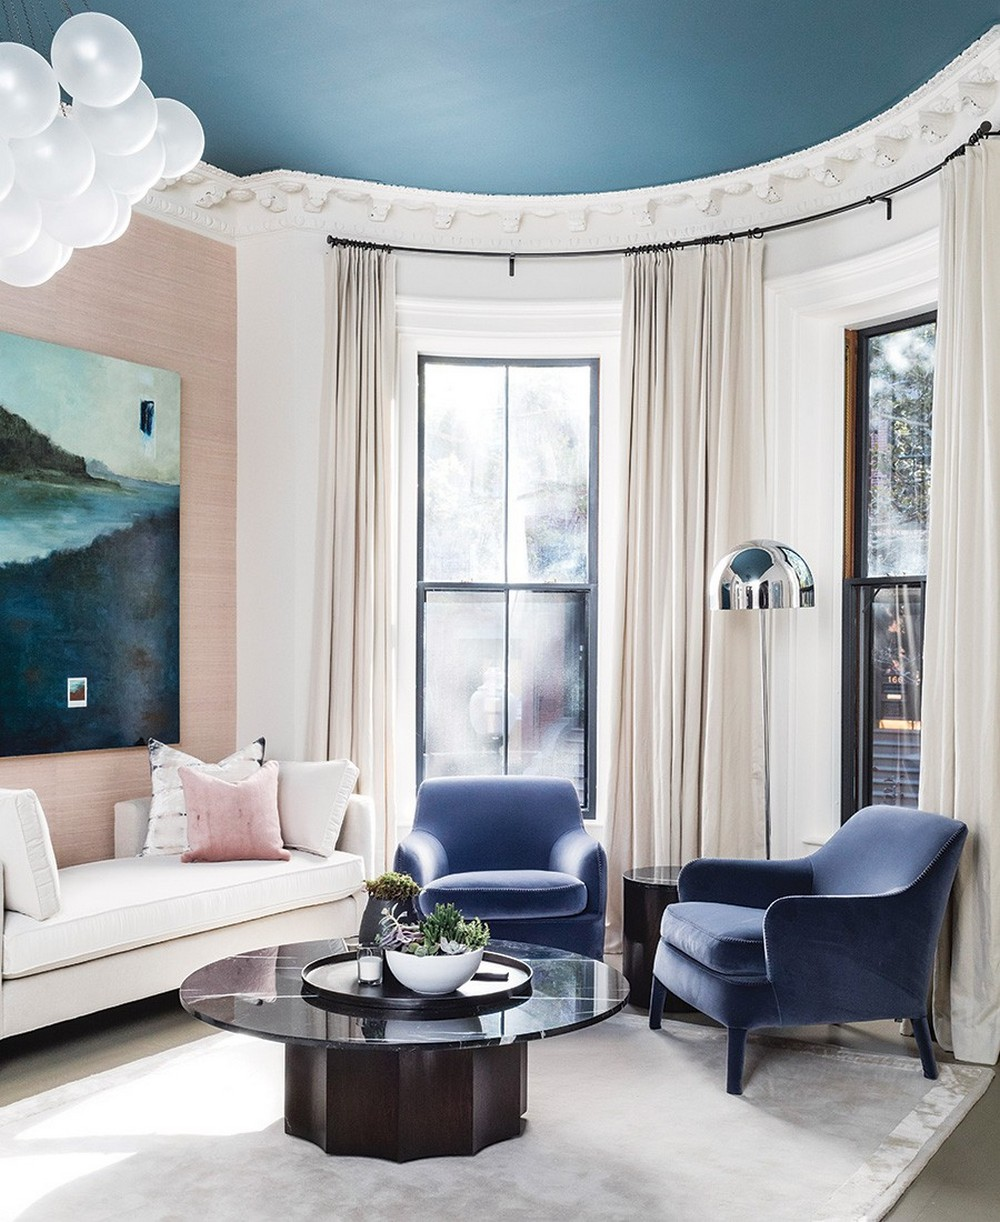 Discover The Best 15 Interior Designers From Boston interior designers Discover The Best 15 Interior Designers From Boston Discover The Best 15 Interior Designers From Boston 10